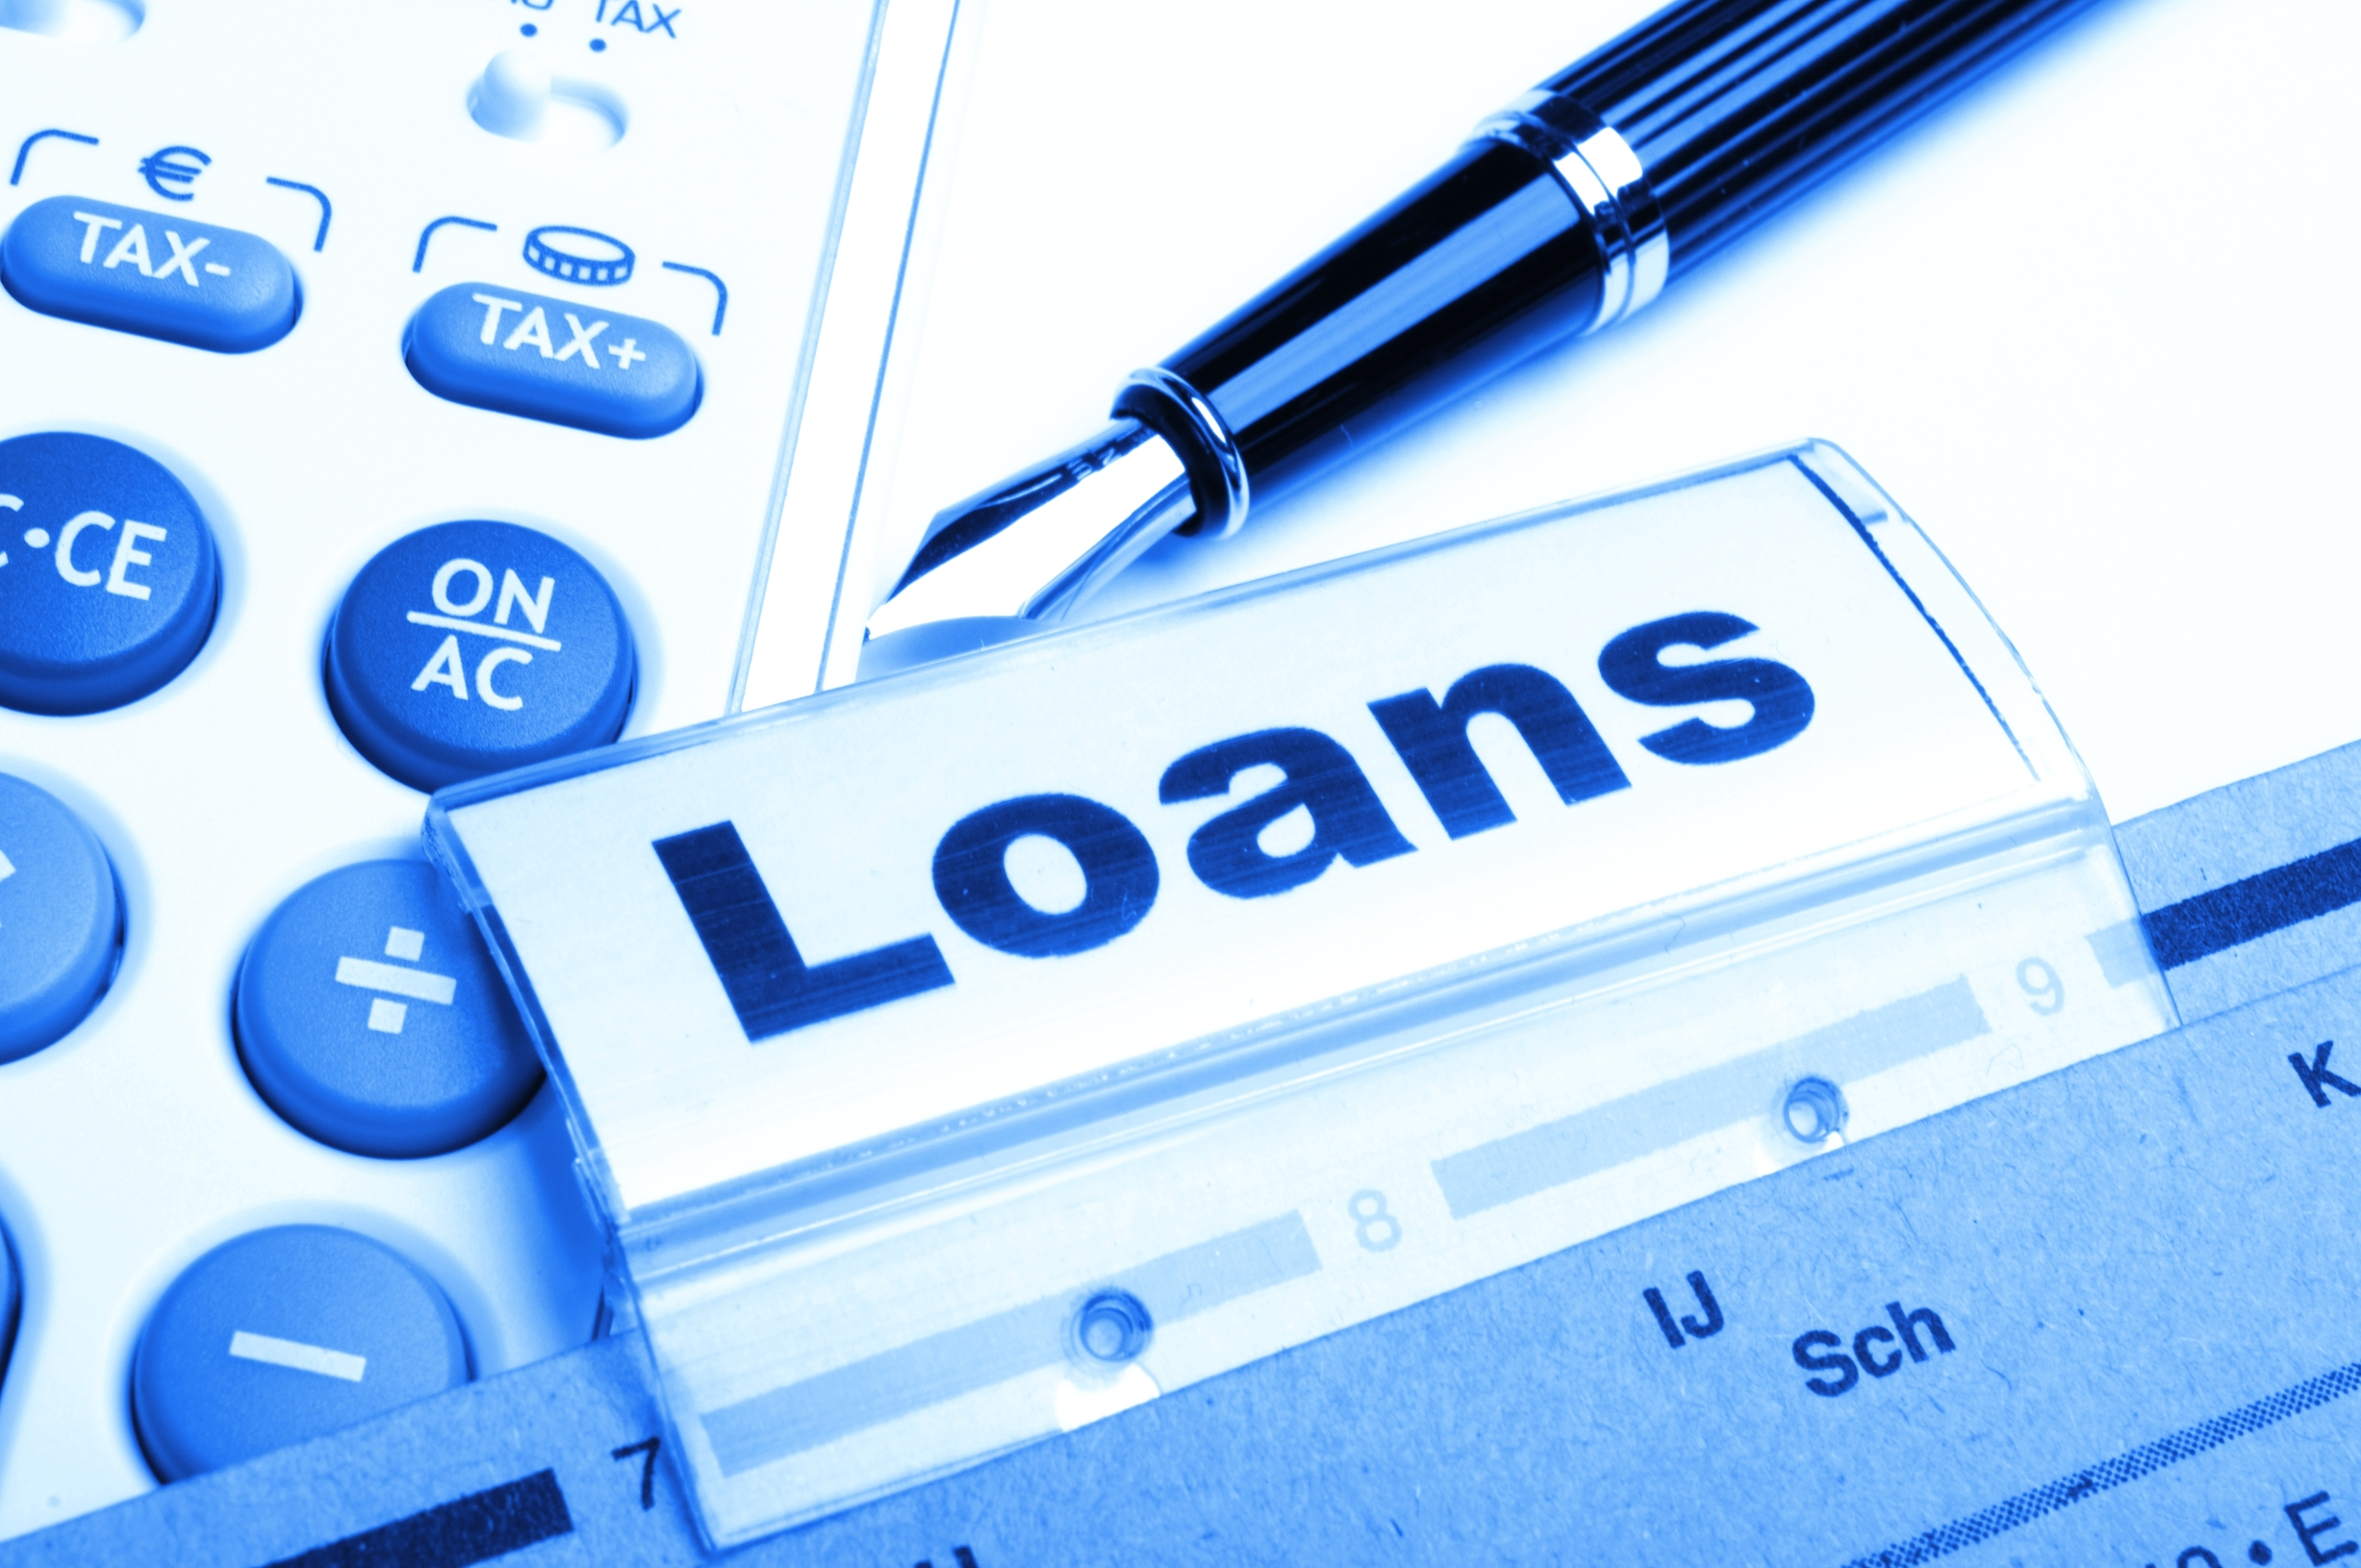 Figure Out What You Can Afford To Pay When Finding Cash Loans Online